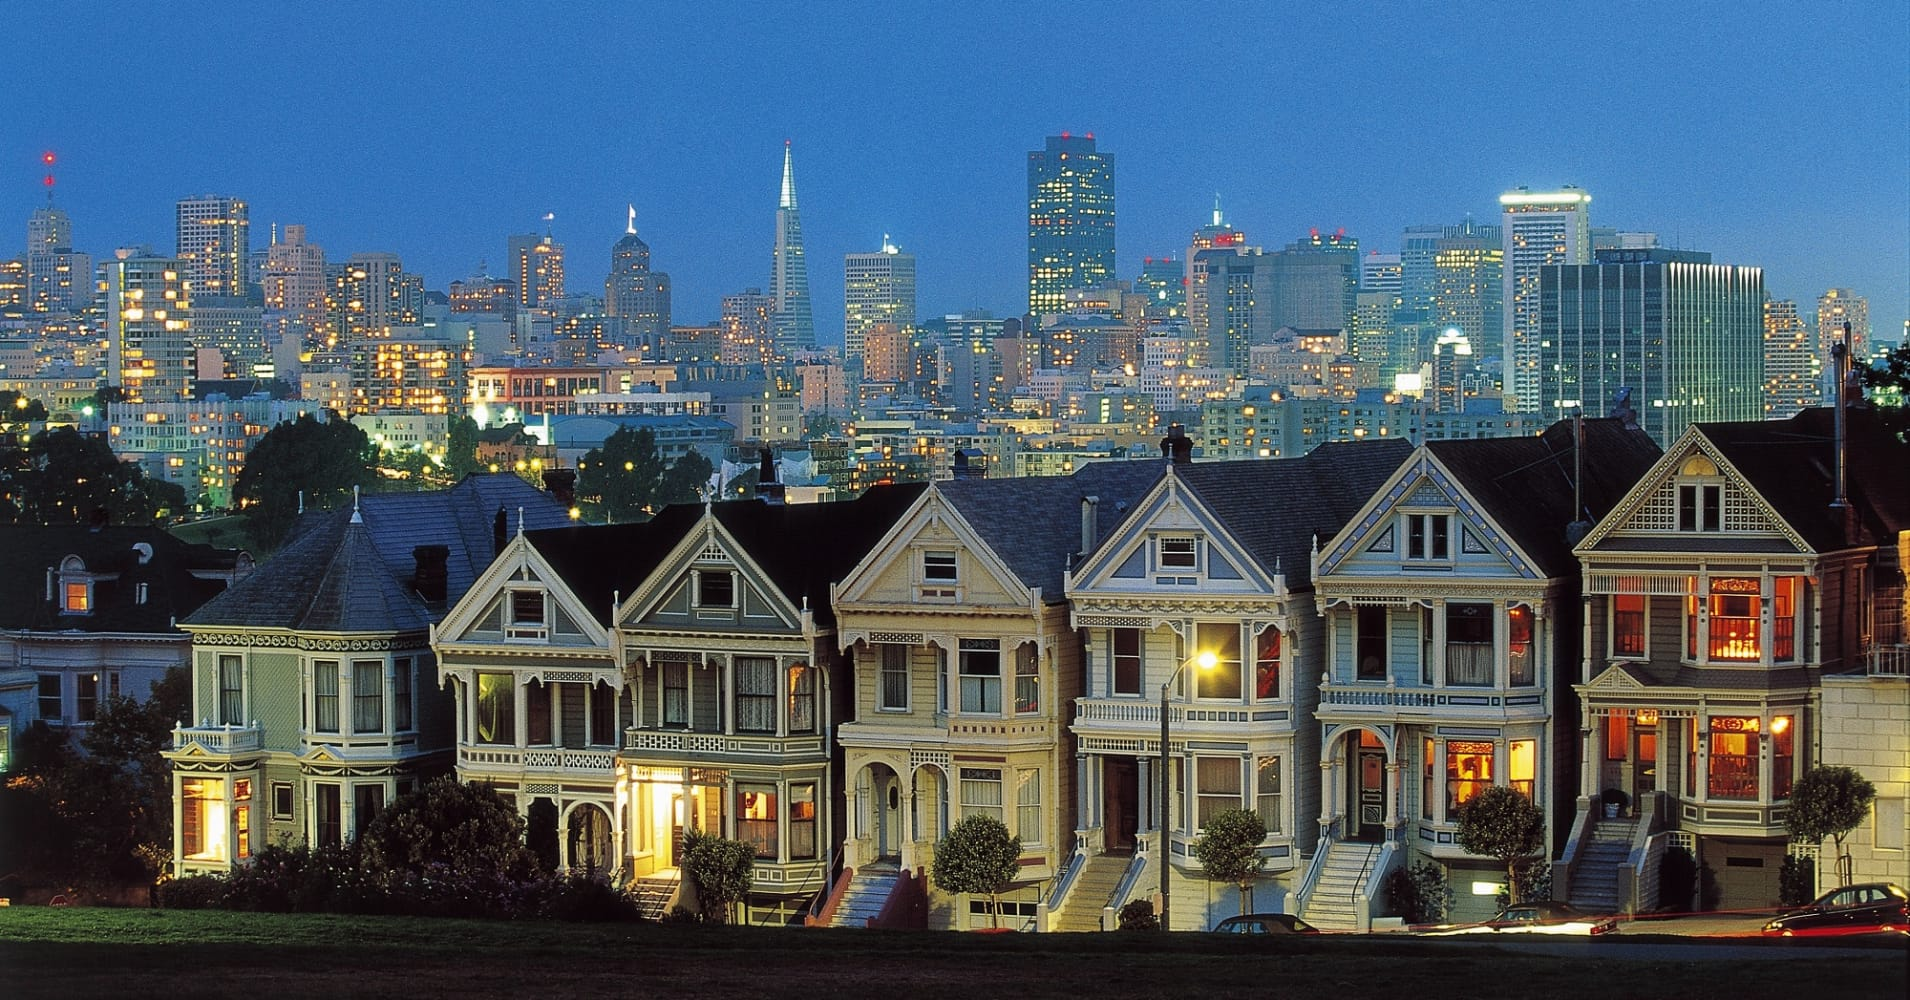 The Painted Ladies, Victorian-style houses with downtown at dusk in the background,